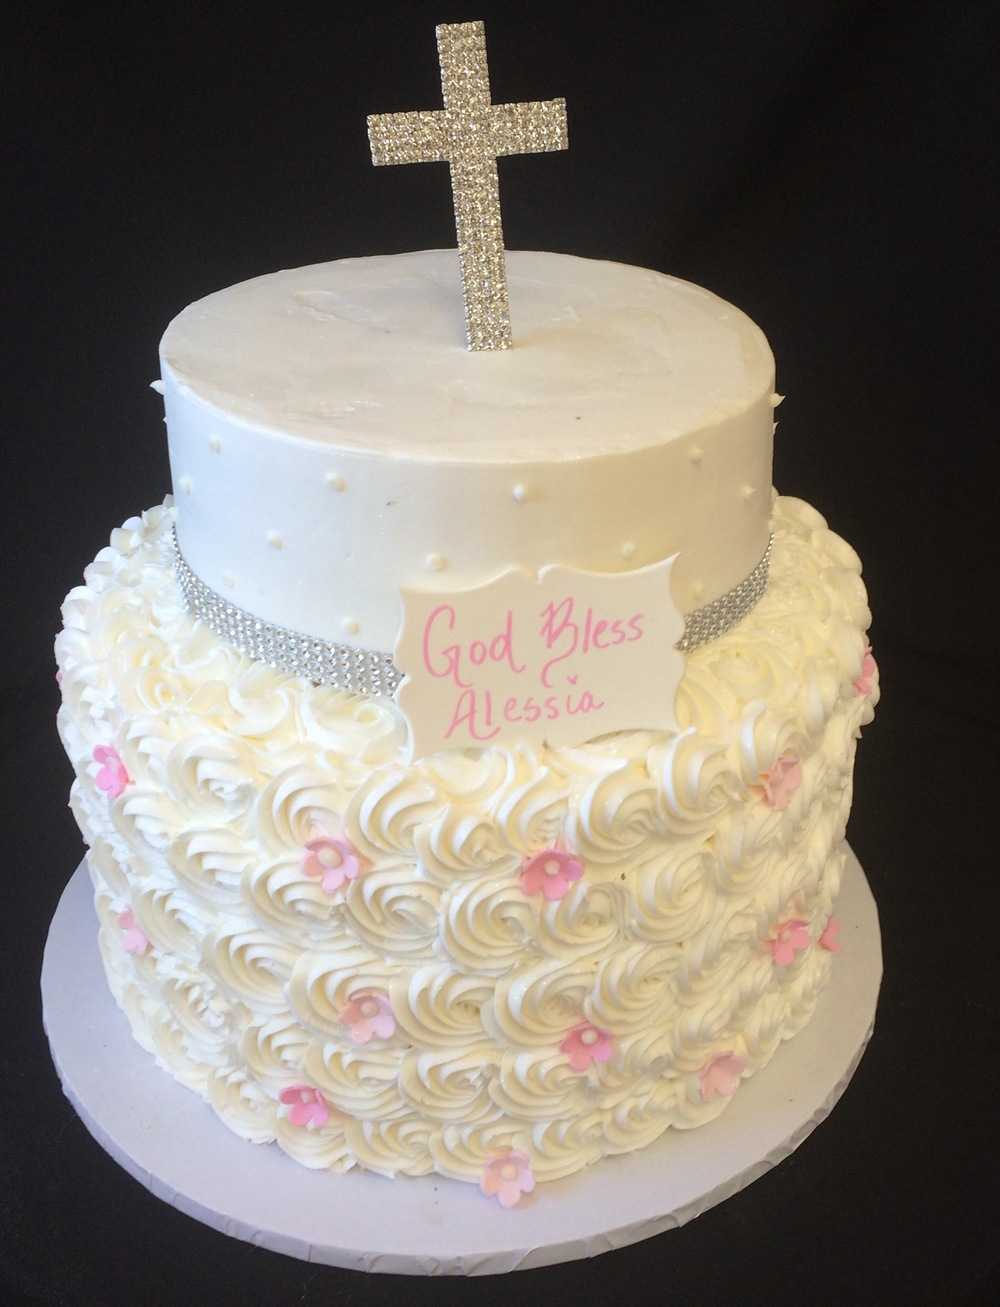 Lg rosette cake with fruit blossoms . Faux crystals Crystal Cross.jpg